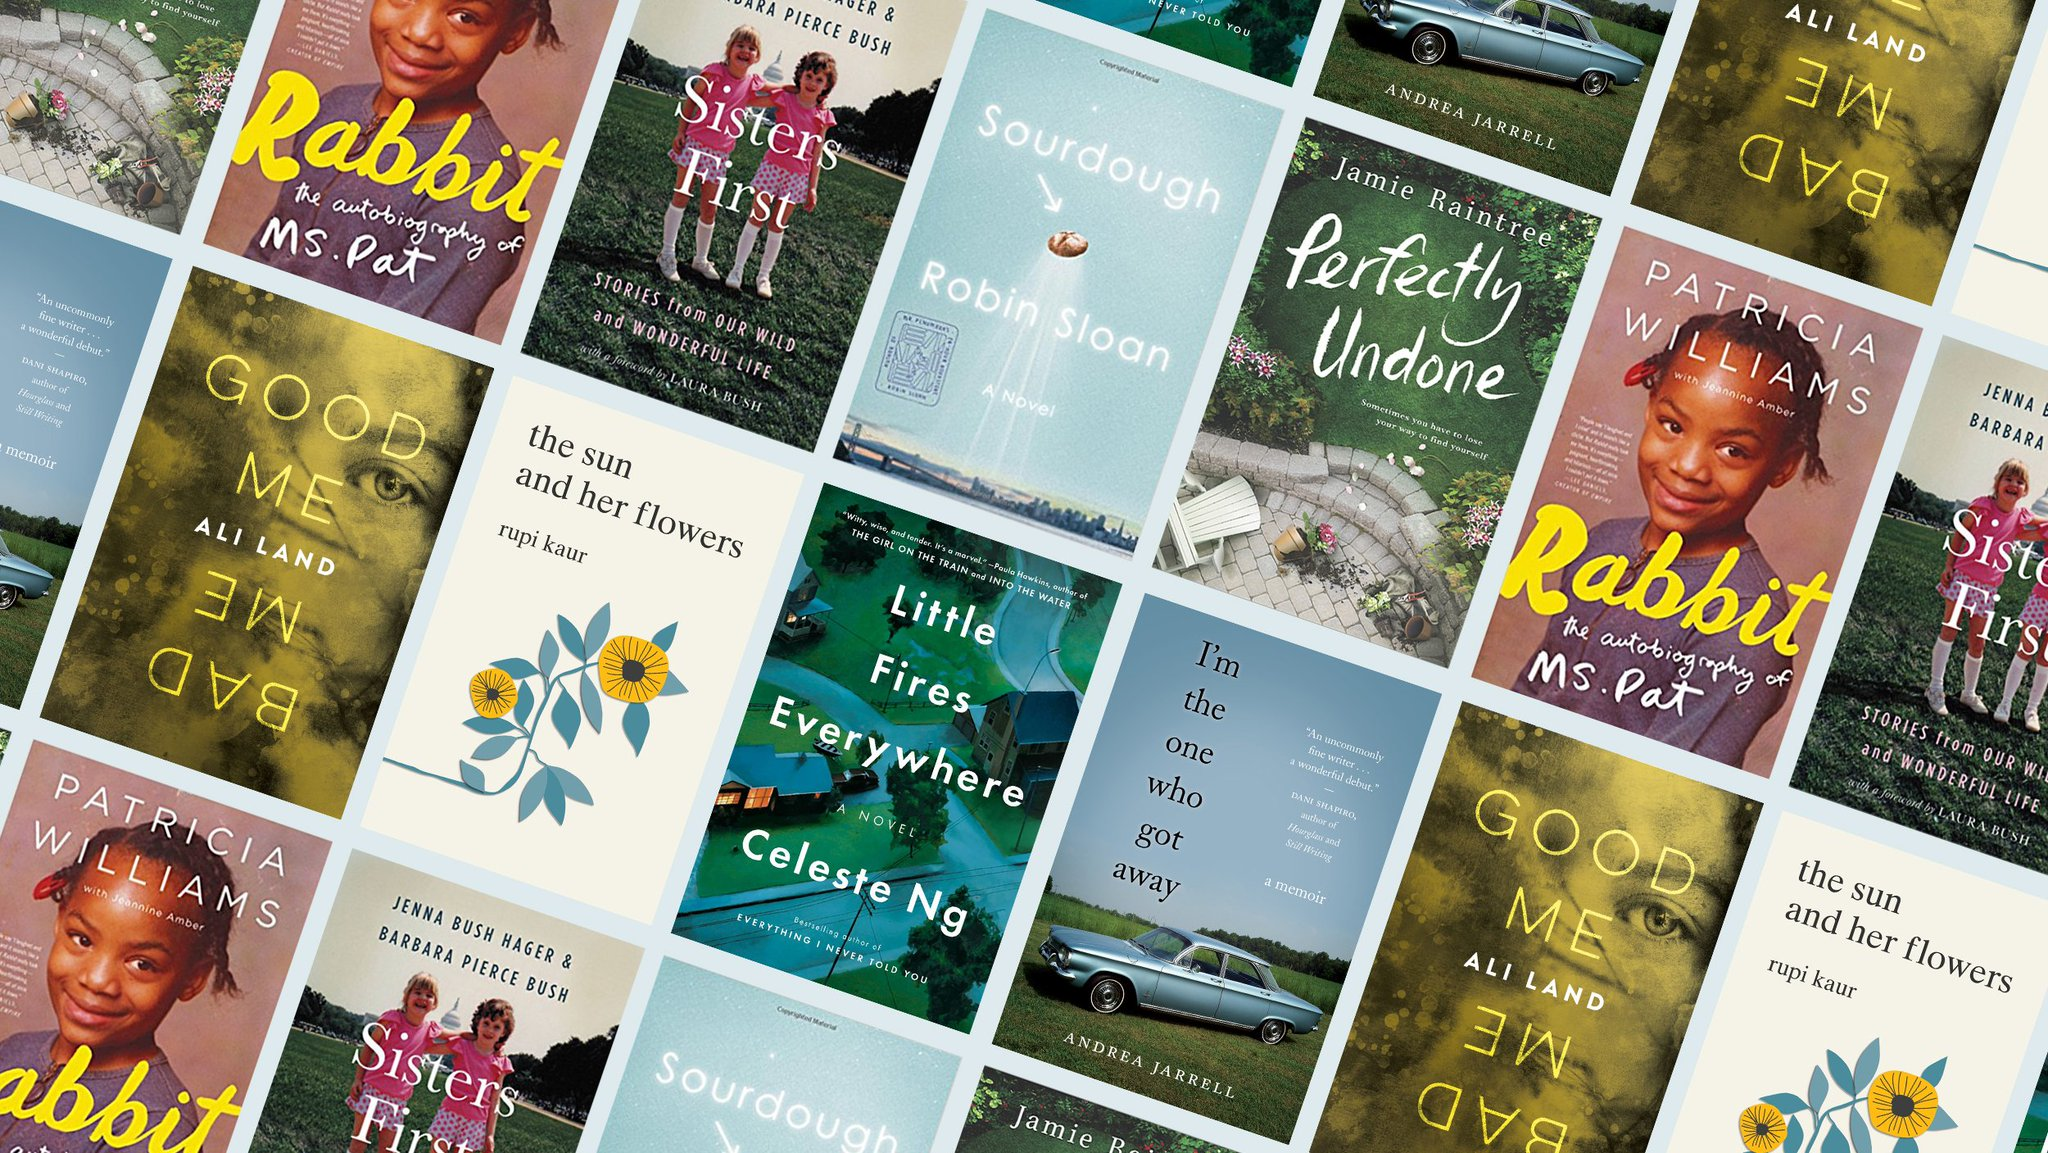 13 new books you'll want to curl up with this fall https://t.co/3MH81e408t https://t.co/0vMmUIU1Rf